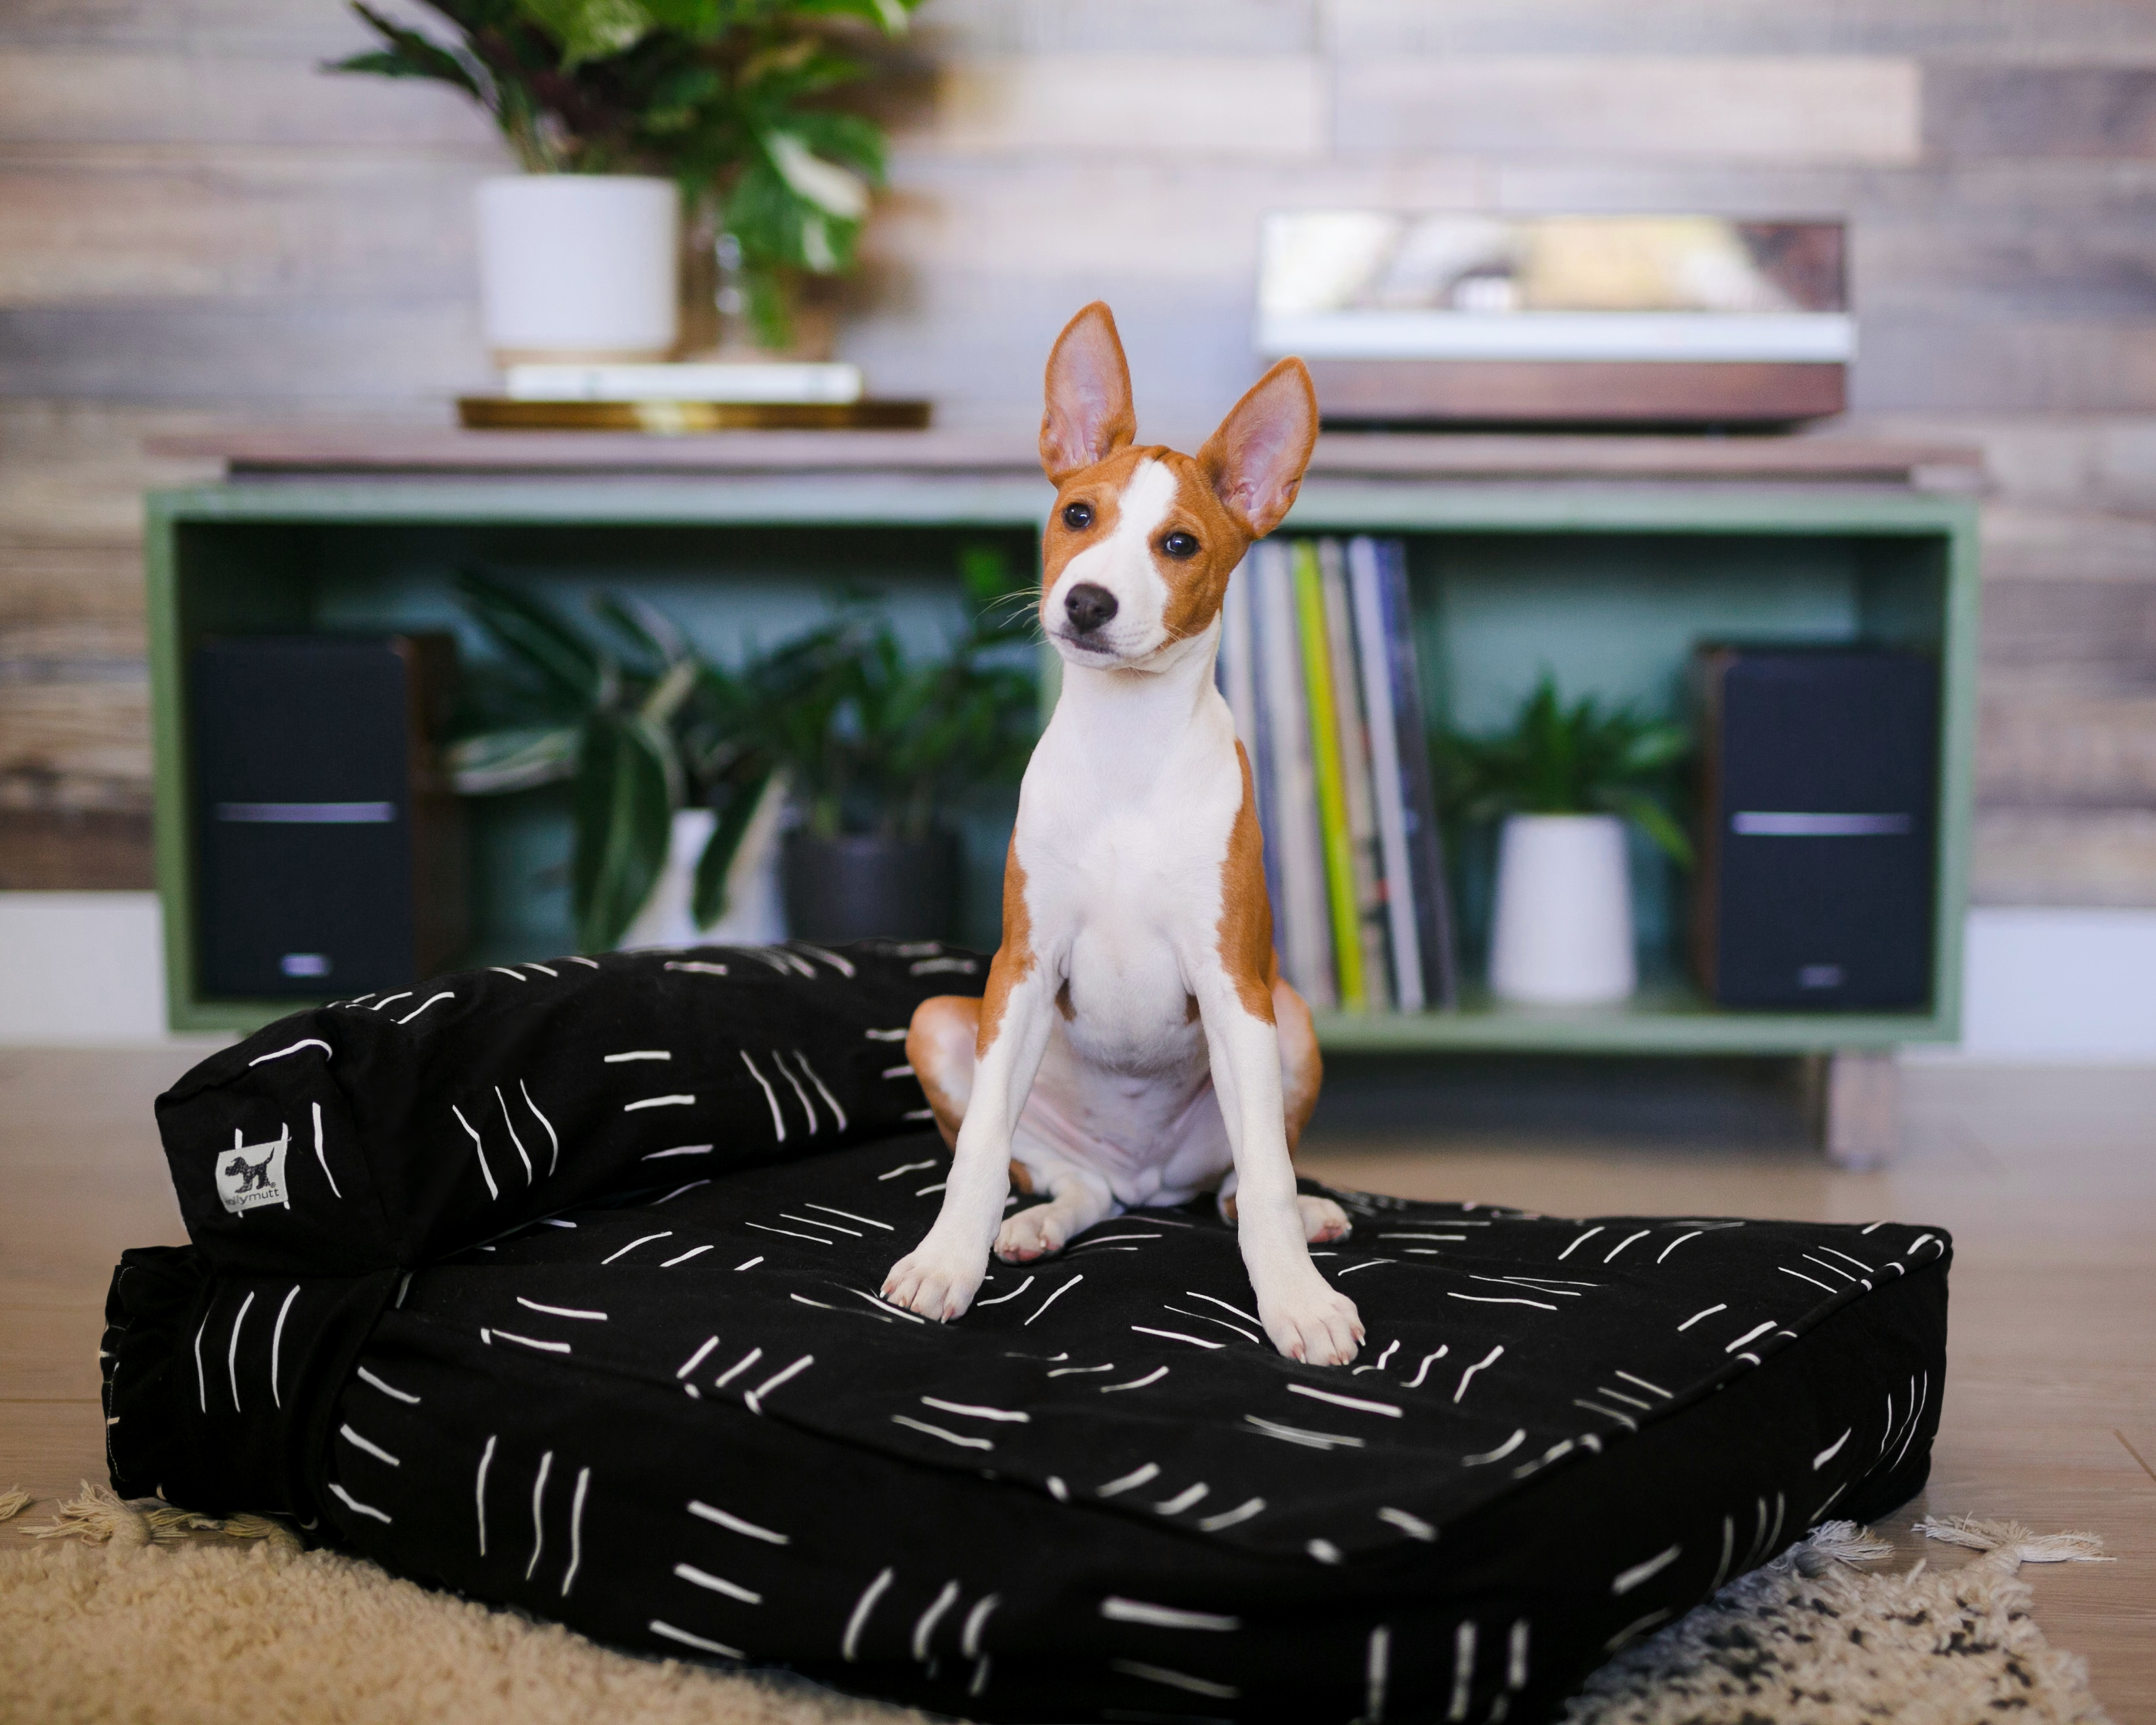 Brown and white dog sitting on a Molly Mutt black striped dog bed